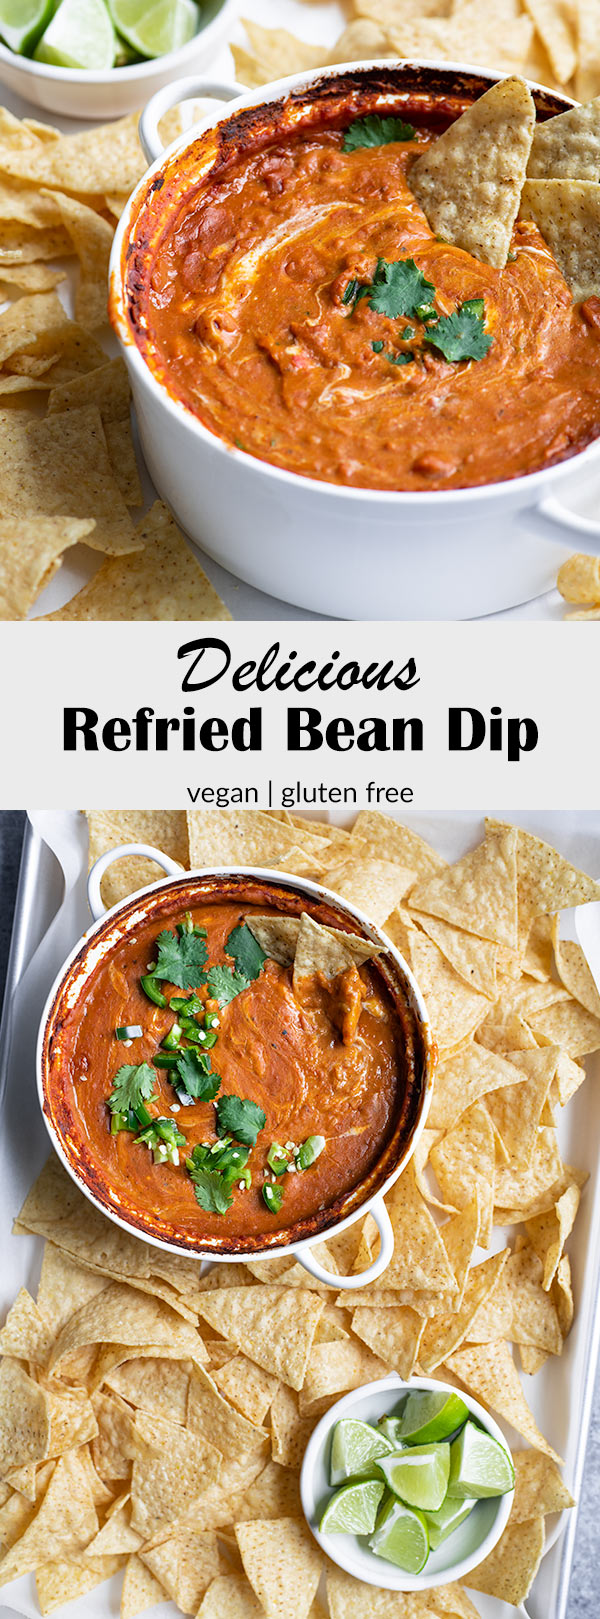 This refried bean dip is a crowd pleasing snack or appetizer! It's super easy to make and needs just a few pantry friendly ingredients to come together. It's also vegan and gluten free, but you'd never know it! #vegan #glutenfree #vegandip #vegansnack #vegansuperbowl #gameday #glutenfreevegan #beandip #refriedbeans #veganmexican